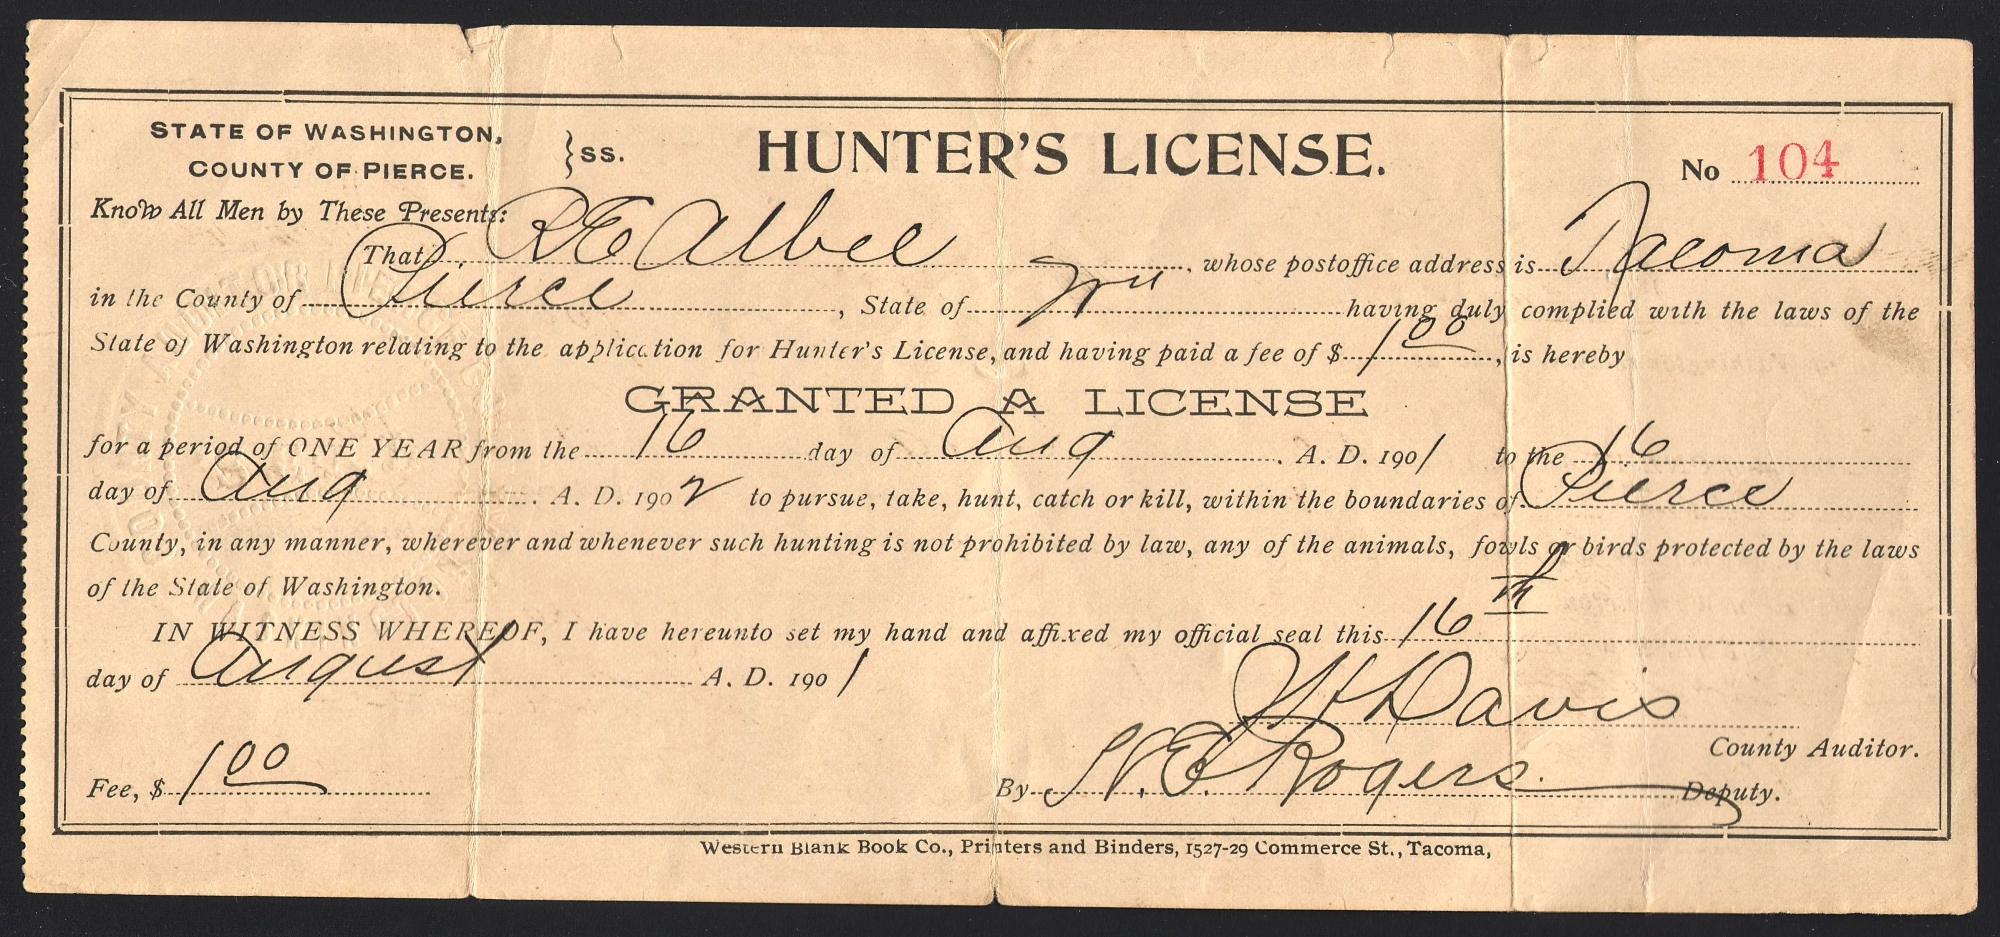 fishing license washington 20 free Cliparts | Download